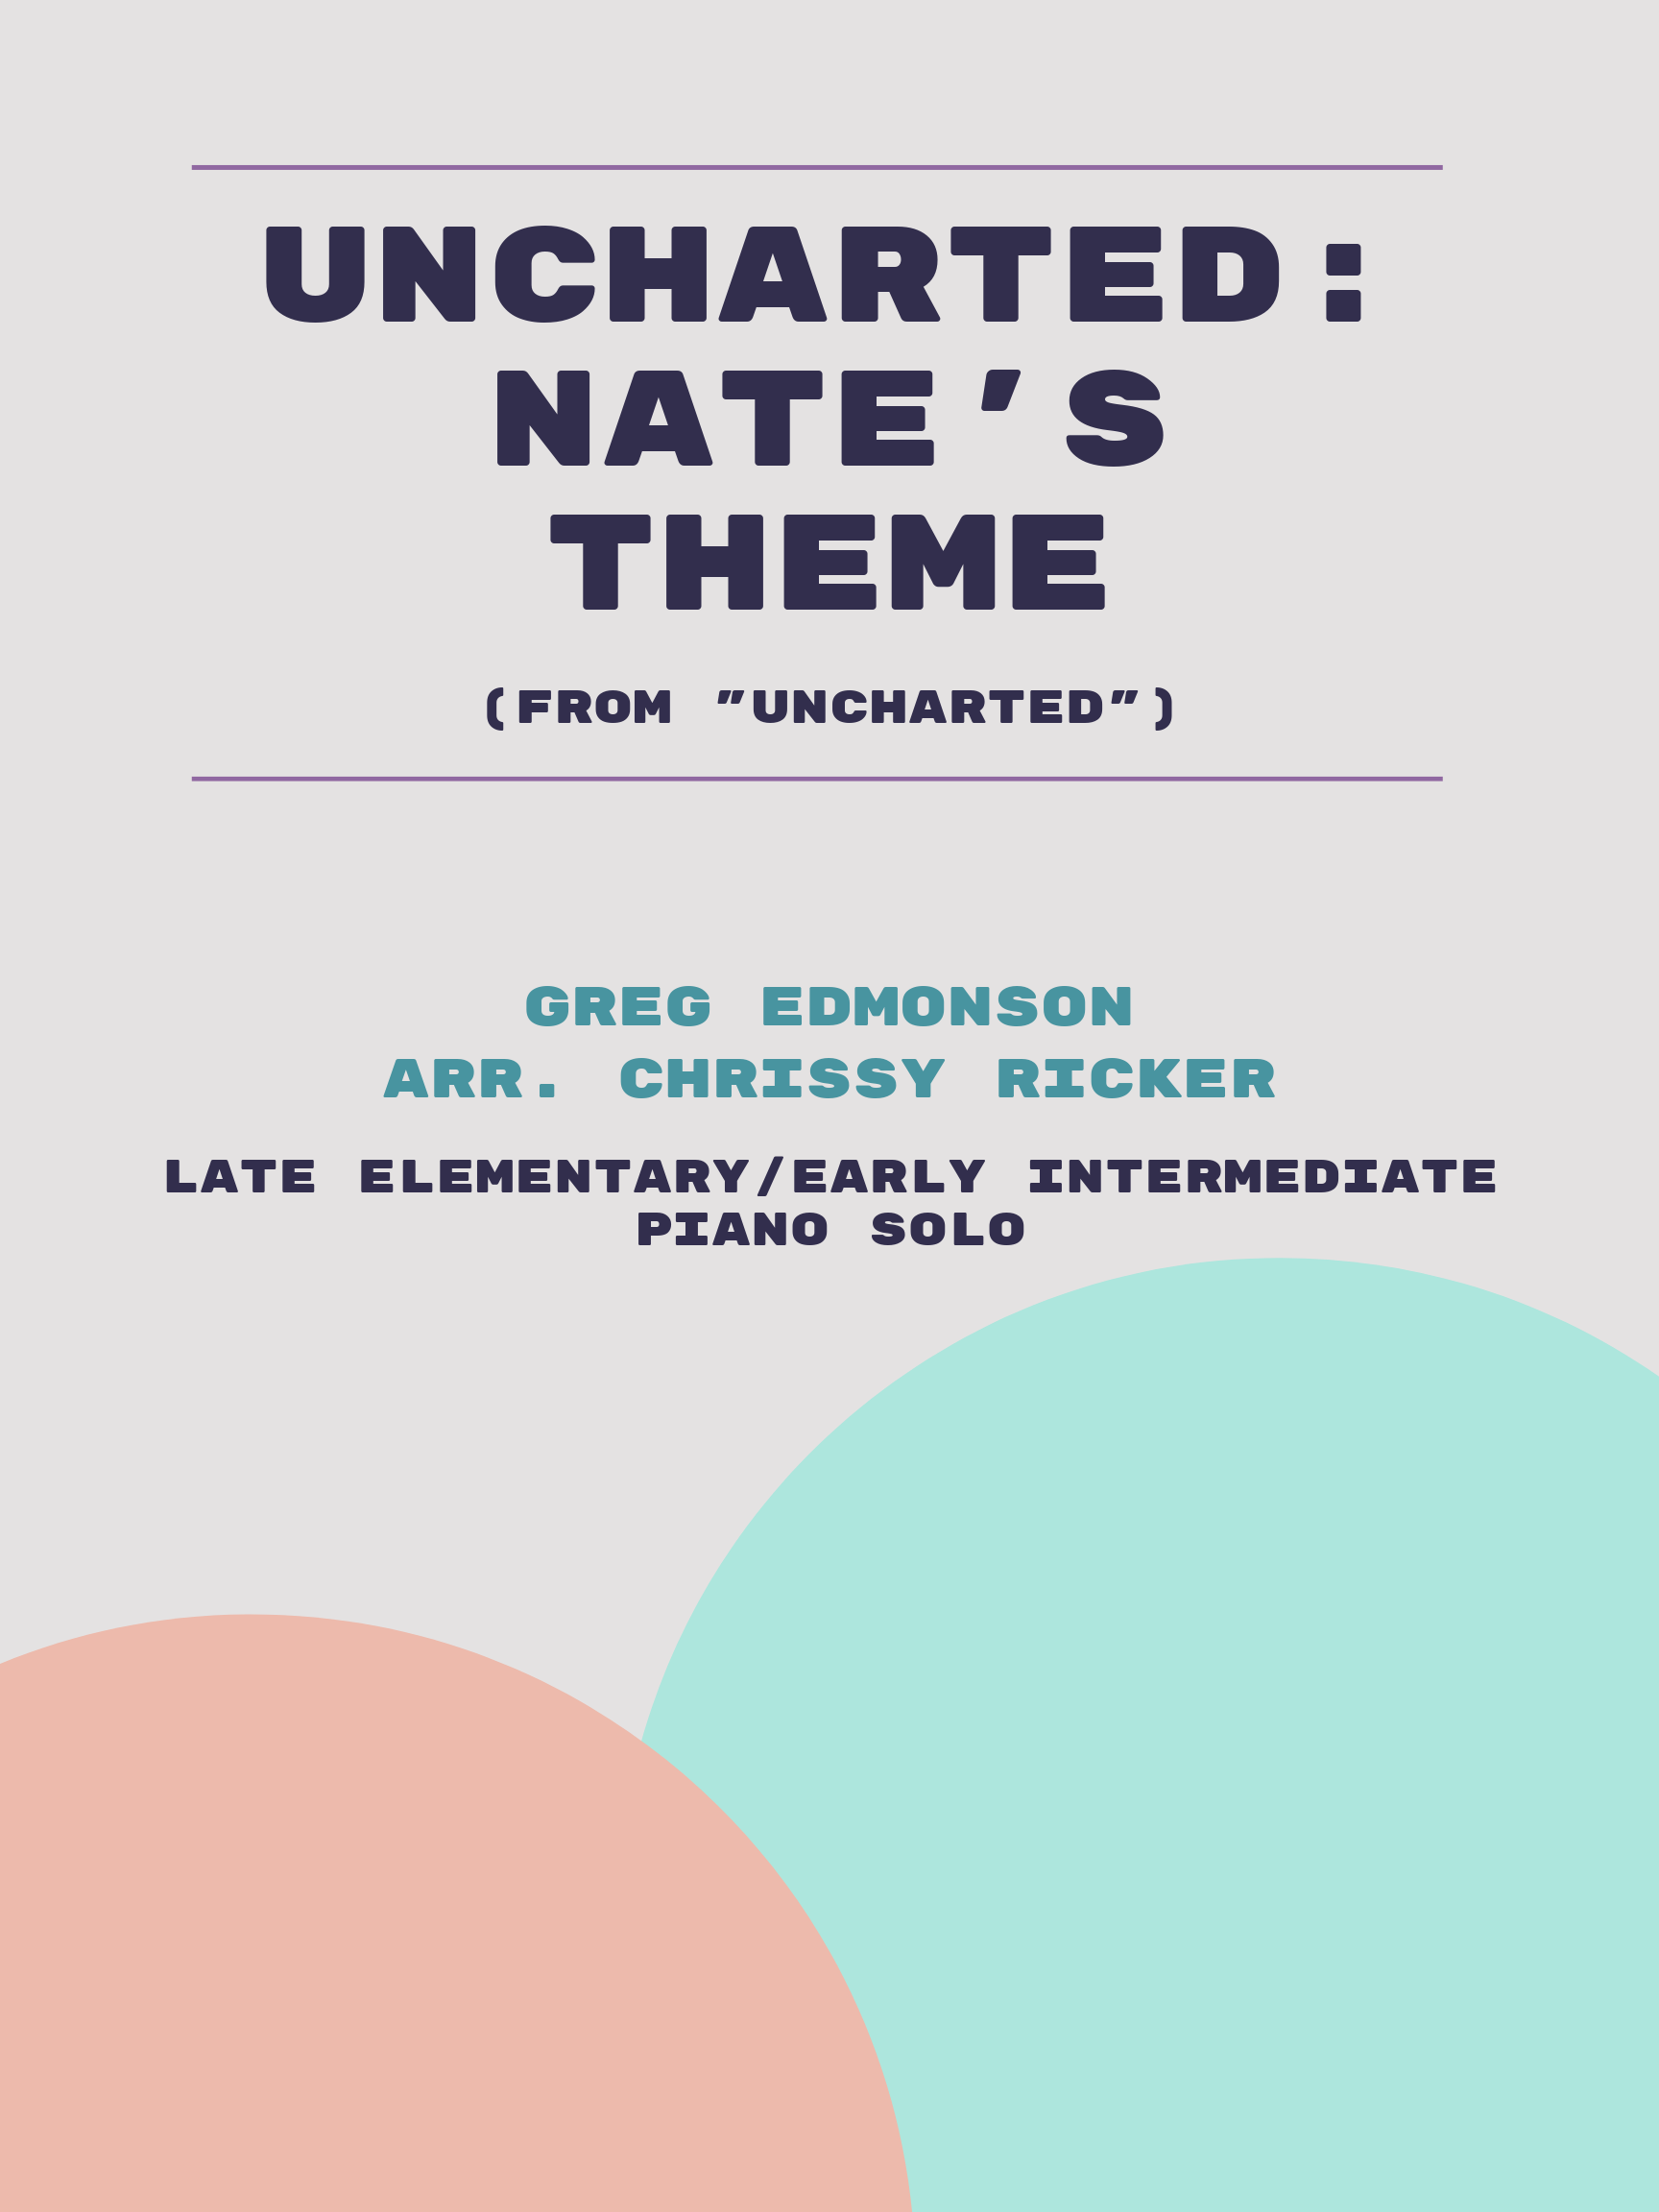 Uncharted: Nate's Theme by Greg Edmonson